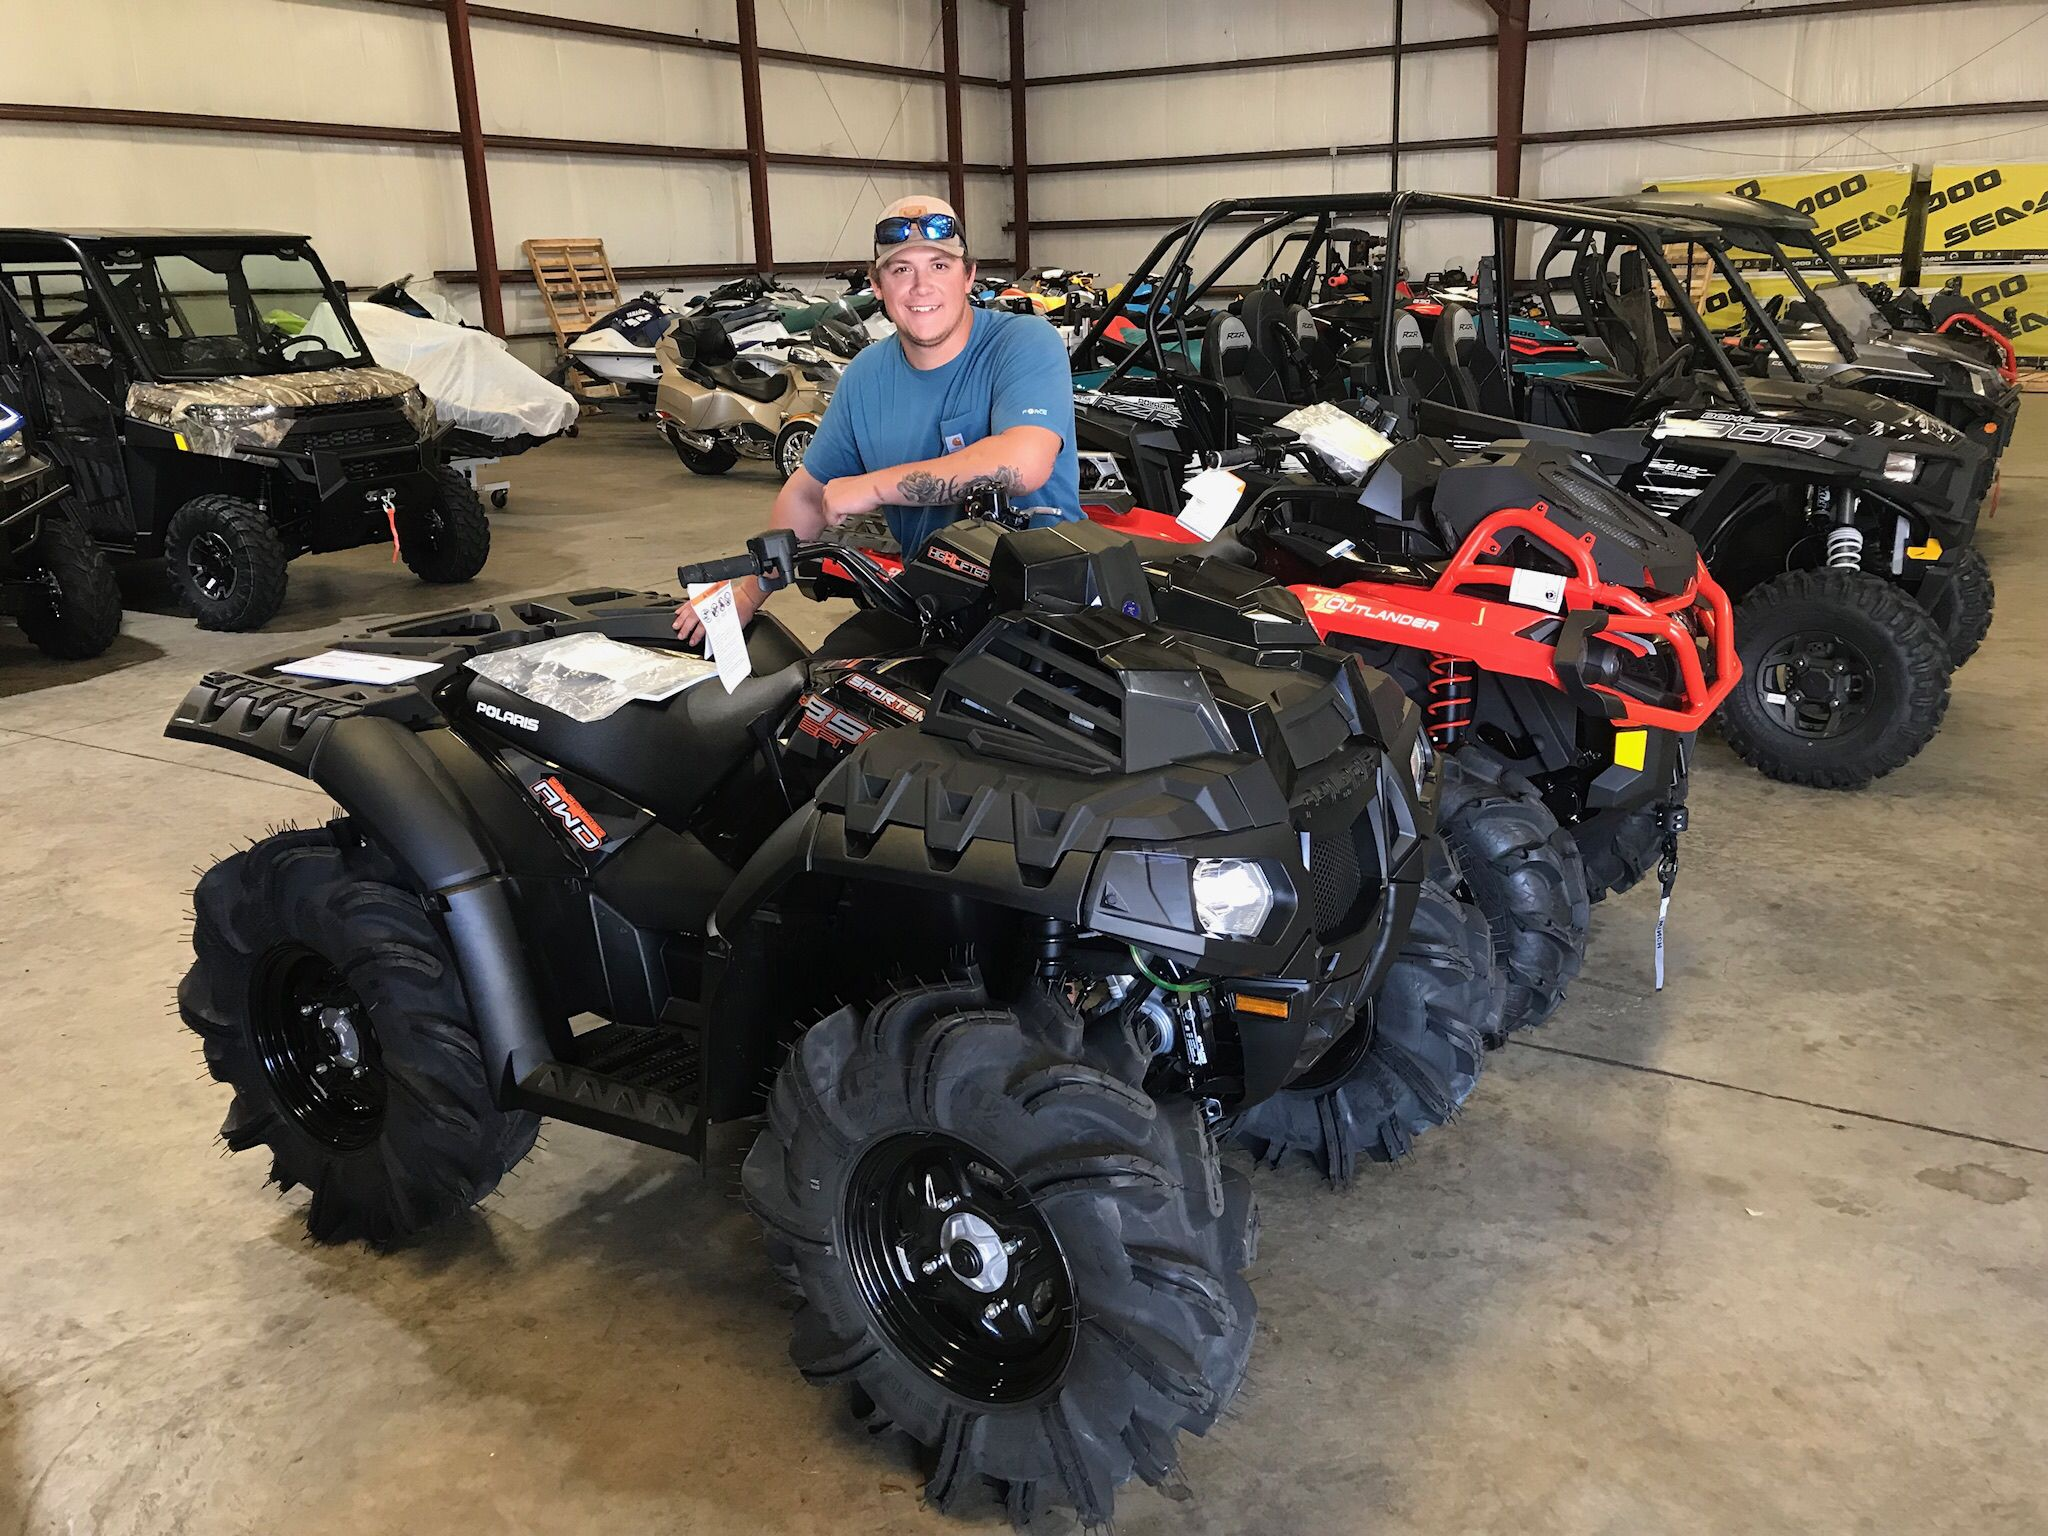 new product a0d7f 5cdfa Congratulations to Matt Henry for purchasing a 2018 Polaris Sportsman Highlifter  850 at Hattiesburg Cycles.  polaris